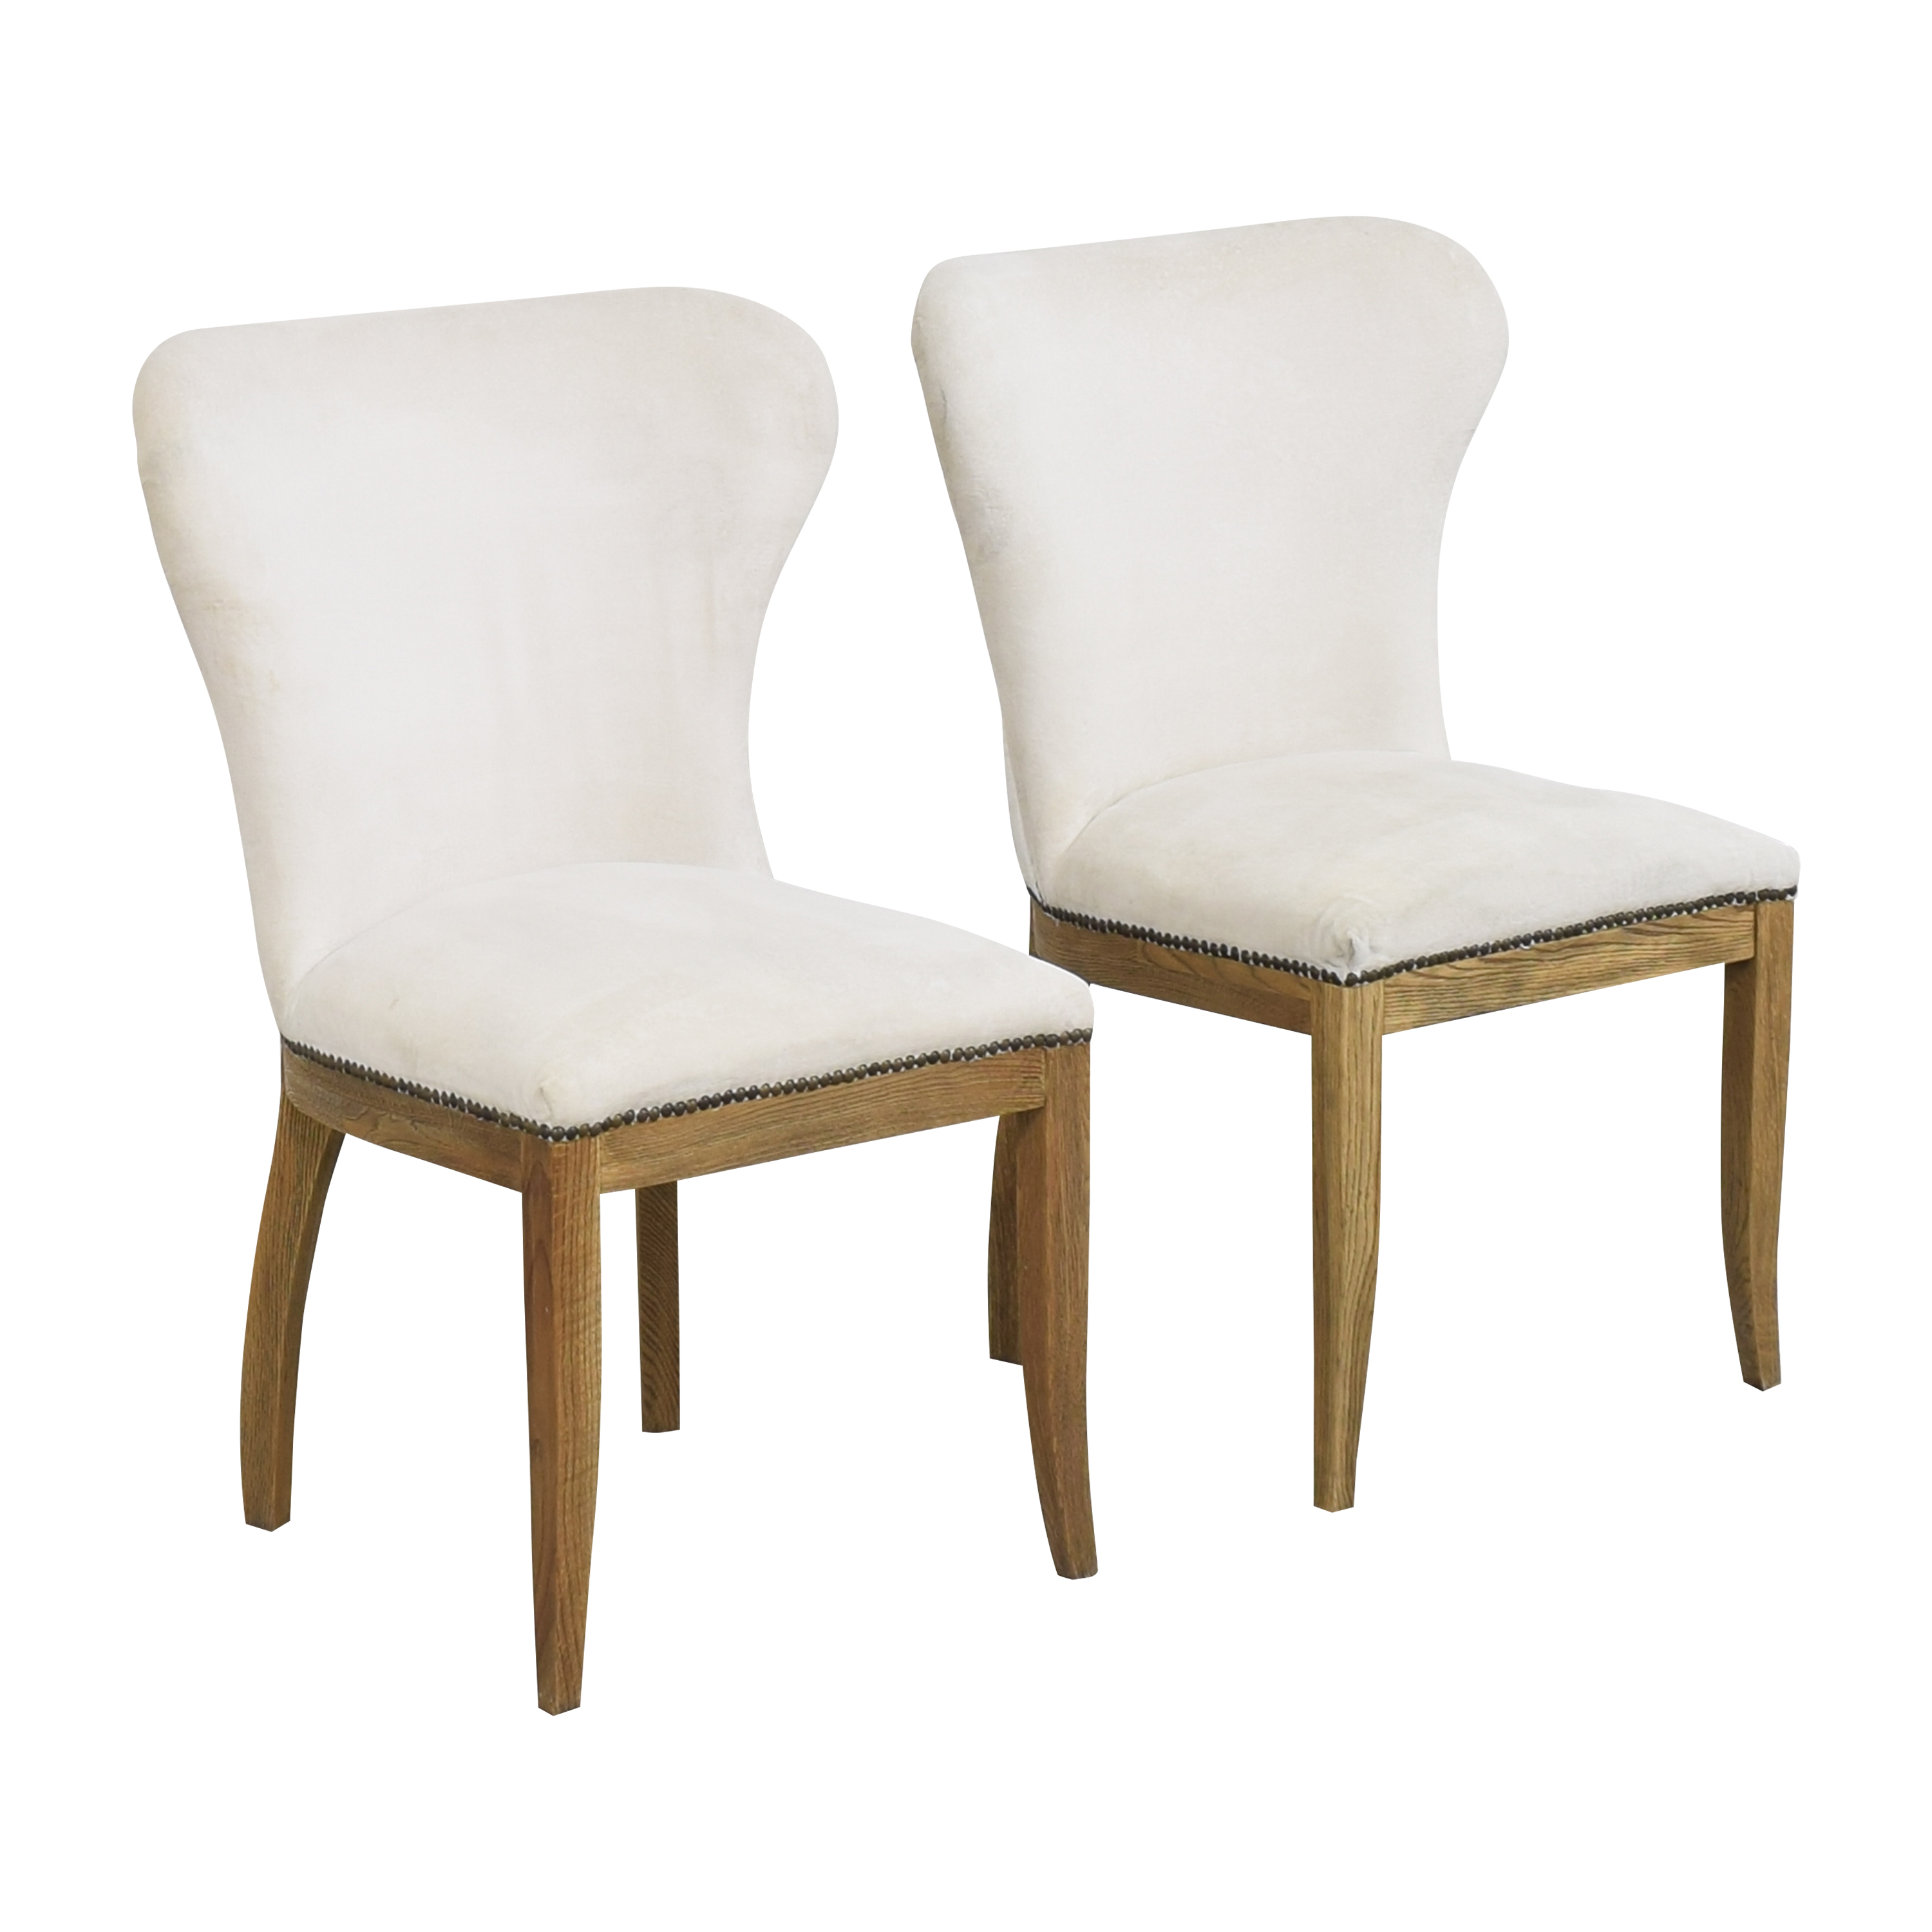 buy Restoration Hardware Restoration Hardware Upholstered Dining Chairs online